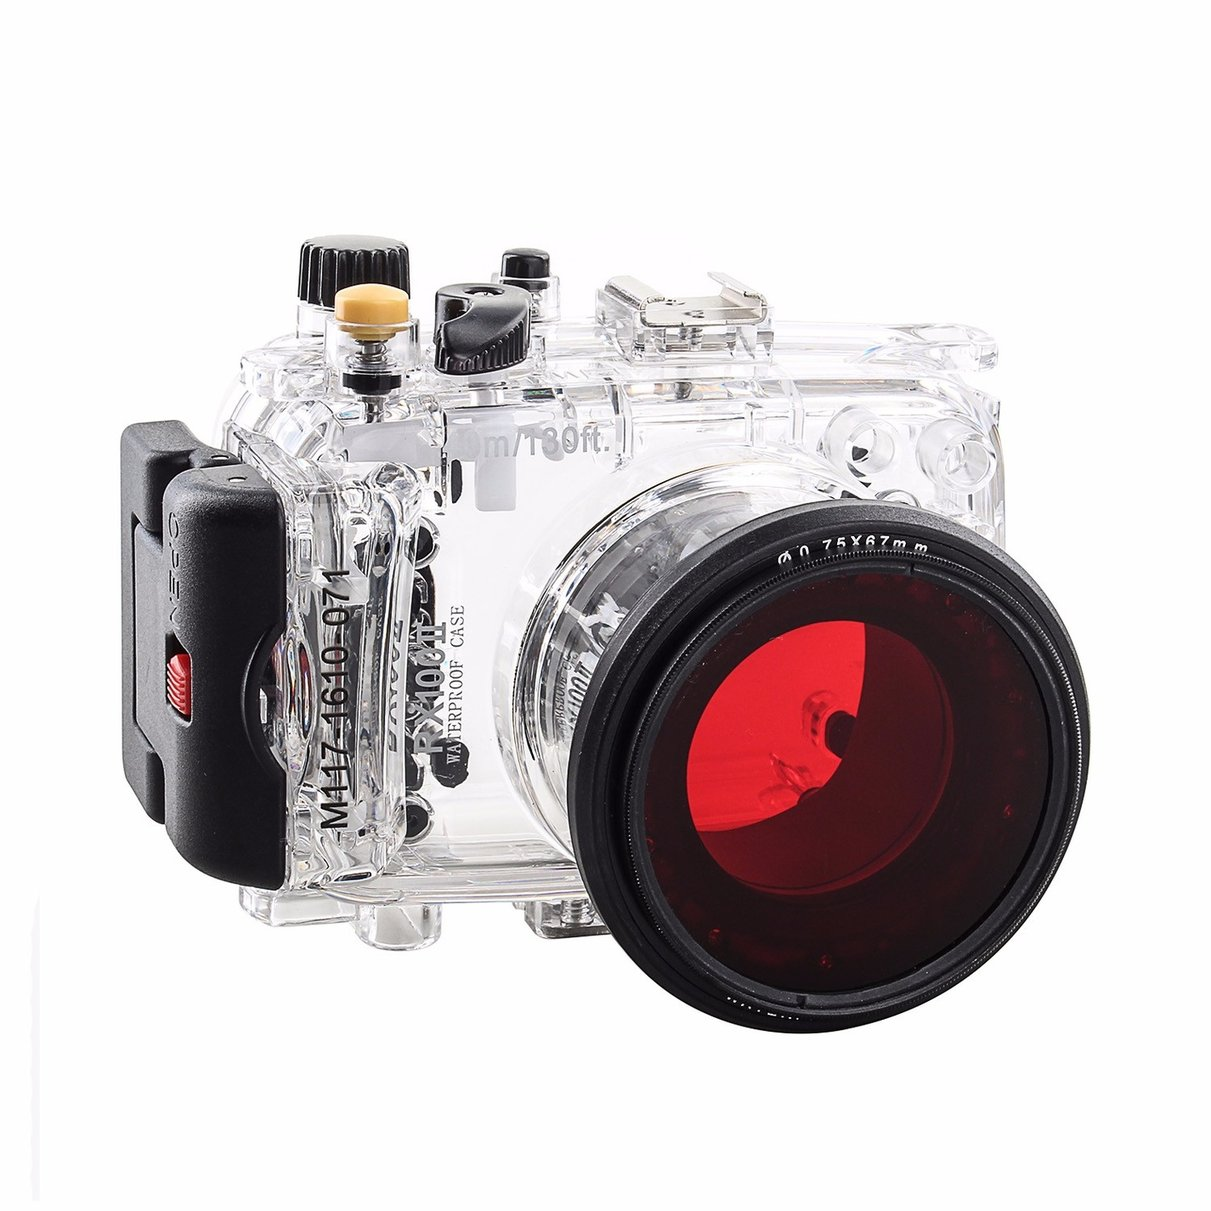 40m 130ft Waterproof Underwater Camera Housing Diving Case for SONY RX100 ii RX100M2 + 67mm Red Filter meikon 40m wp dc44 waterproof underwater housing case 40m 130ft for canon g1x camera 18 as wp dc44